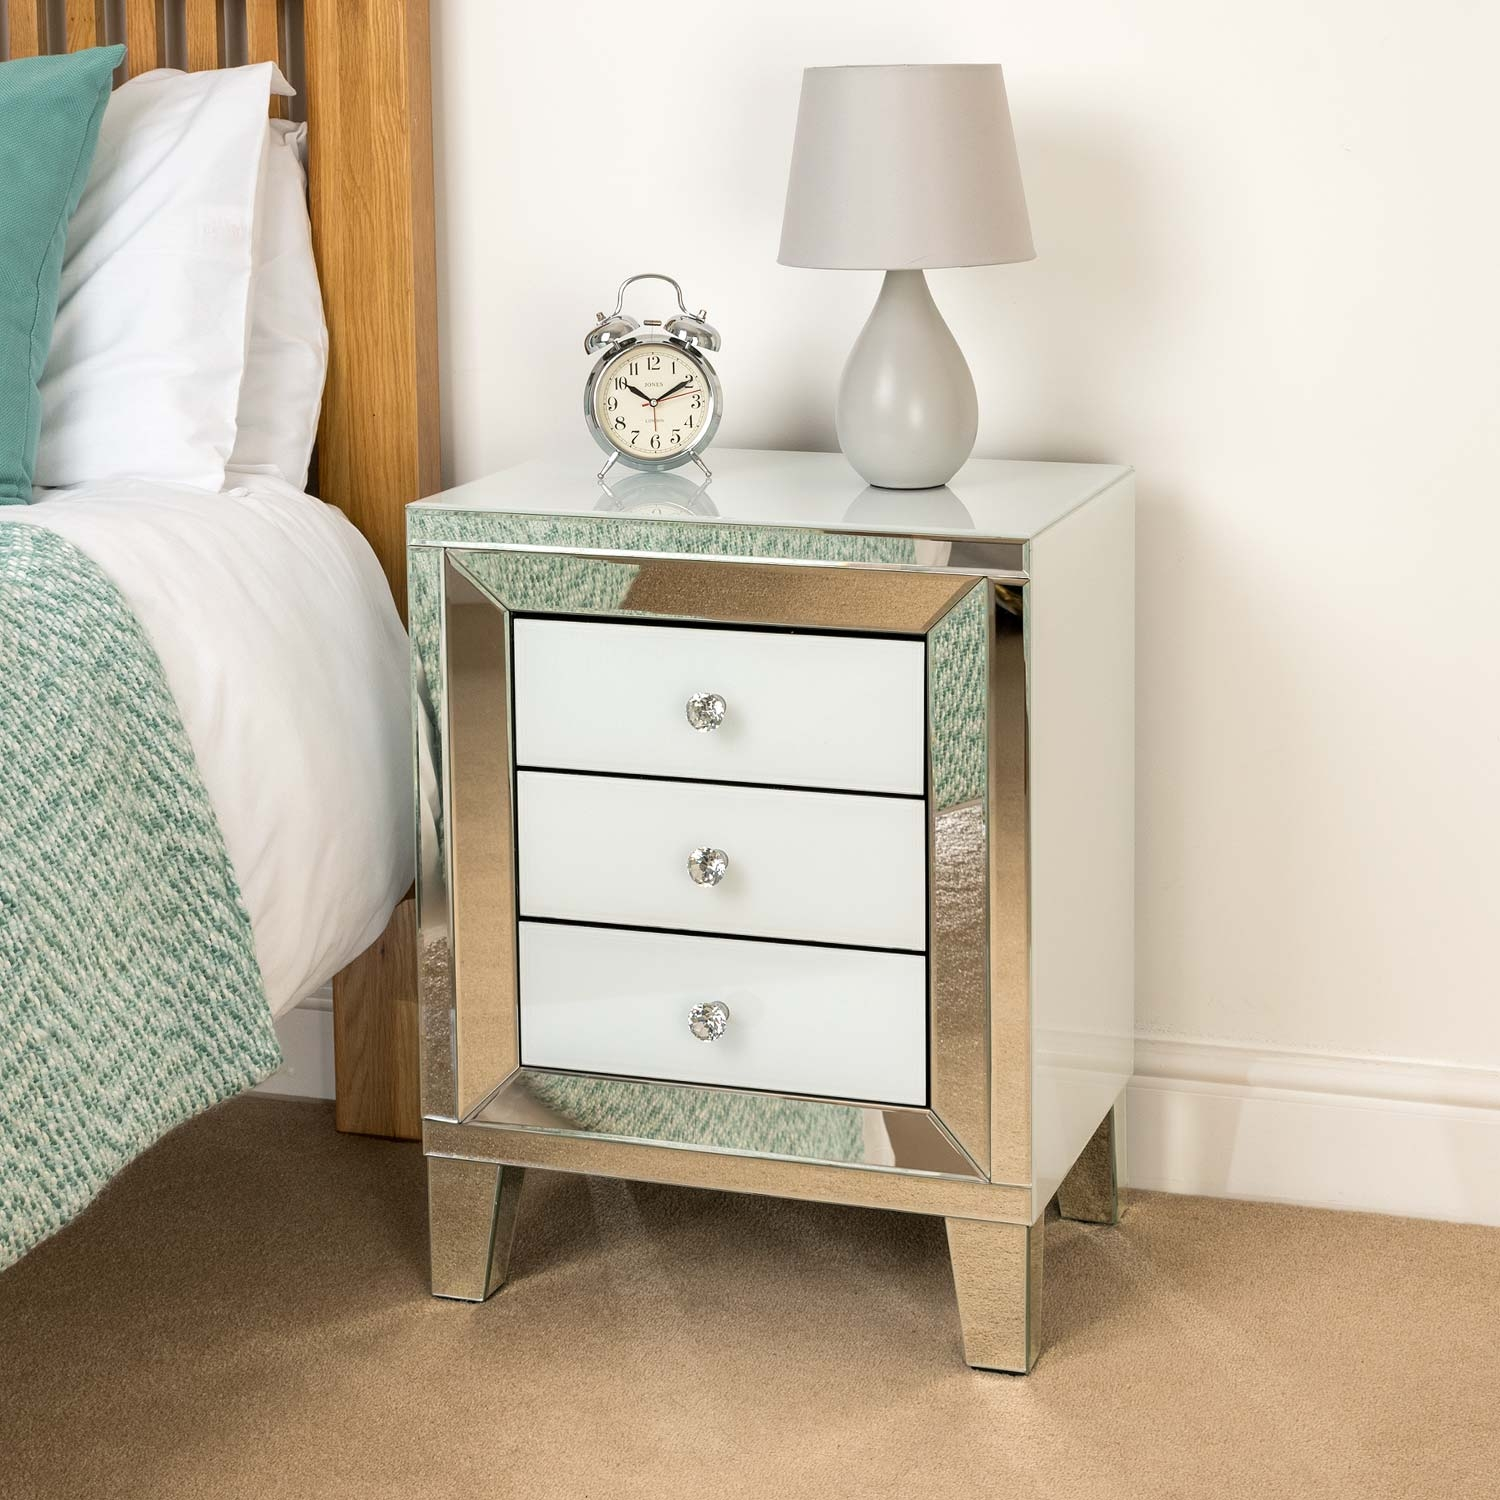 Image of Christow White 3 Drawer Mirrored Bedside Cabinet